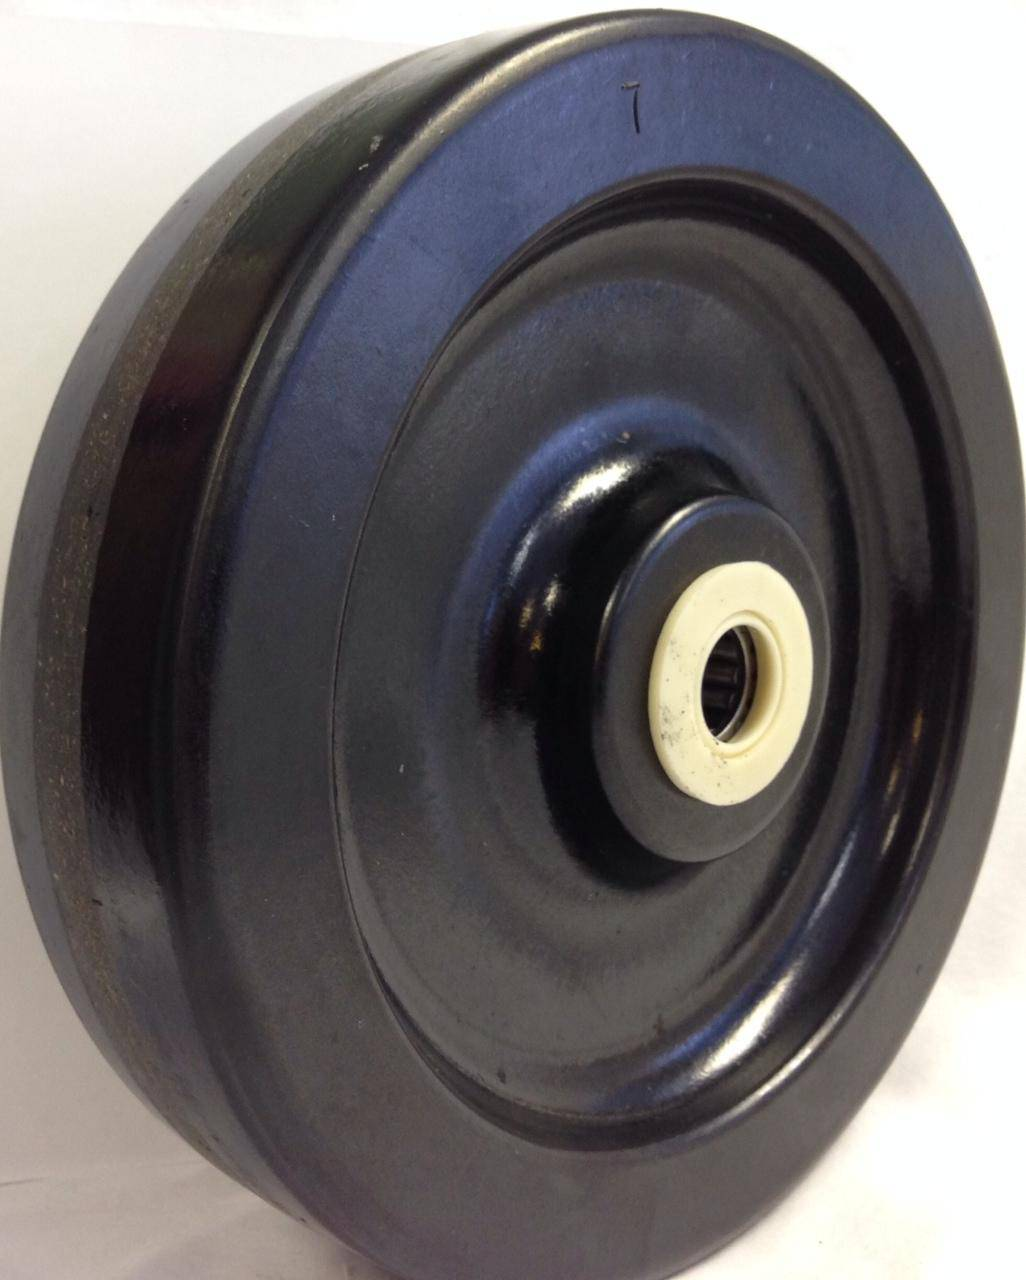 8″ Phenolic Wheel With 3-1/4 Hub 1-1/4″ Roller Bearing 2500 Lbs Cap